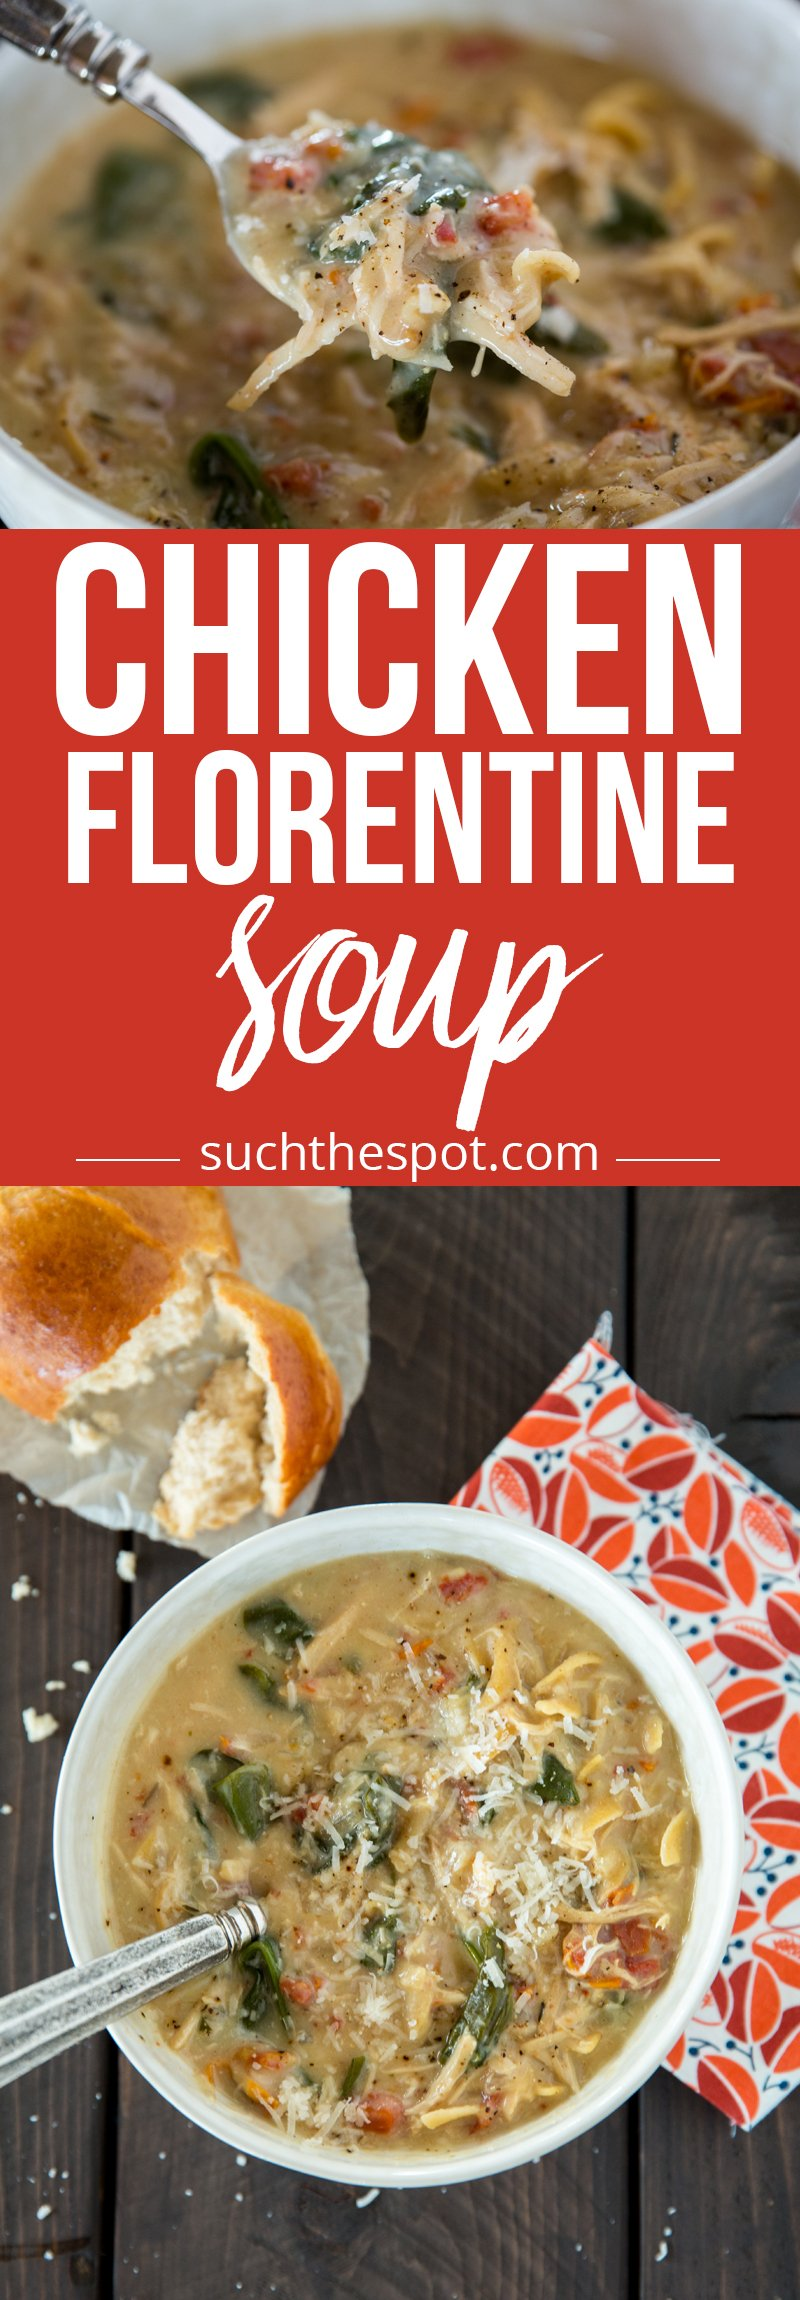 When I'm in the mood for a creamy comfort food, I turn to this Chicken Florentine soup recipe. It's healthy because it's made with all real food ingredients and it's easy because it's made in a slow cooker or Instant Pot.